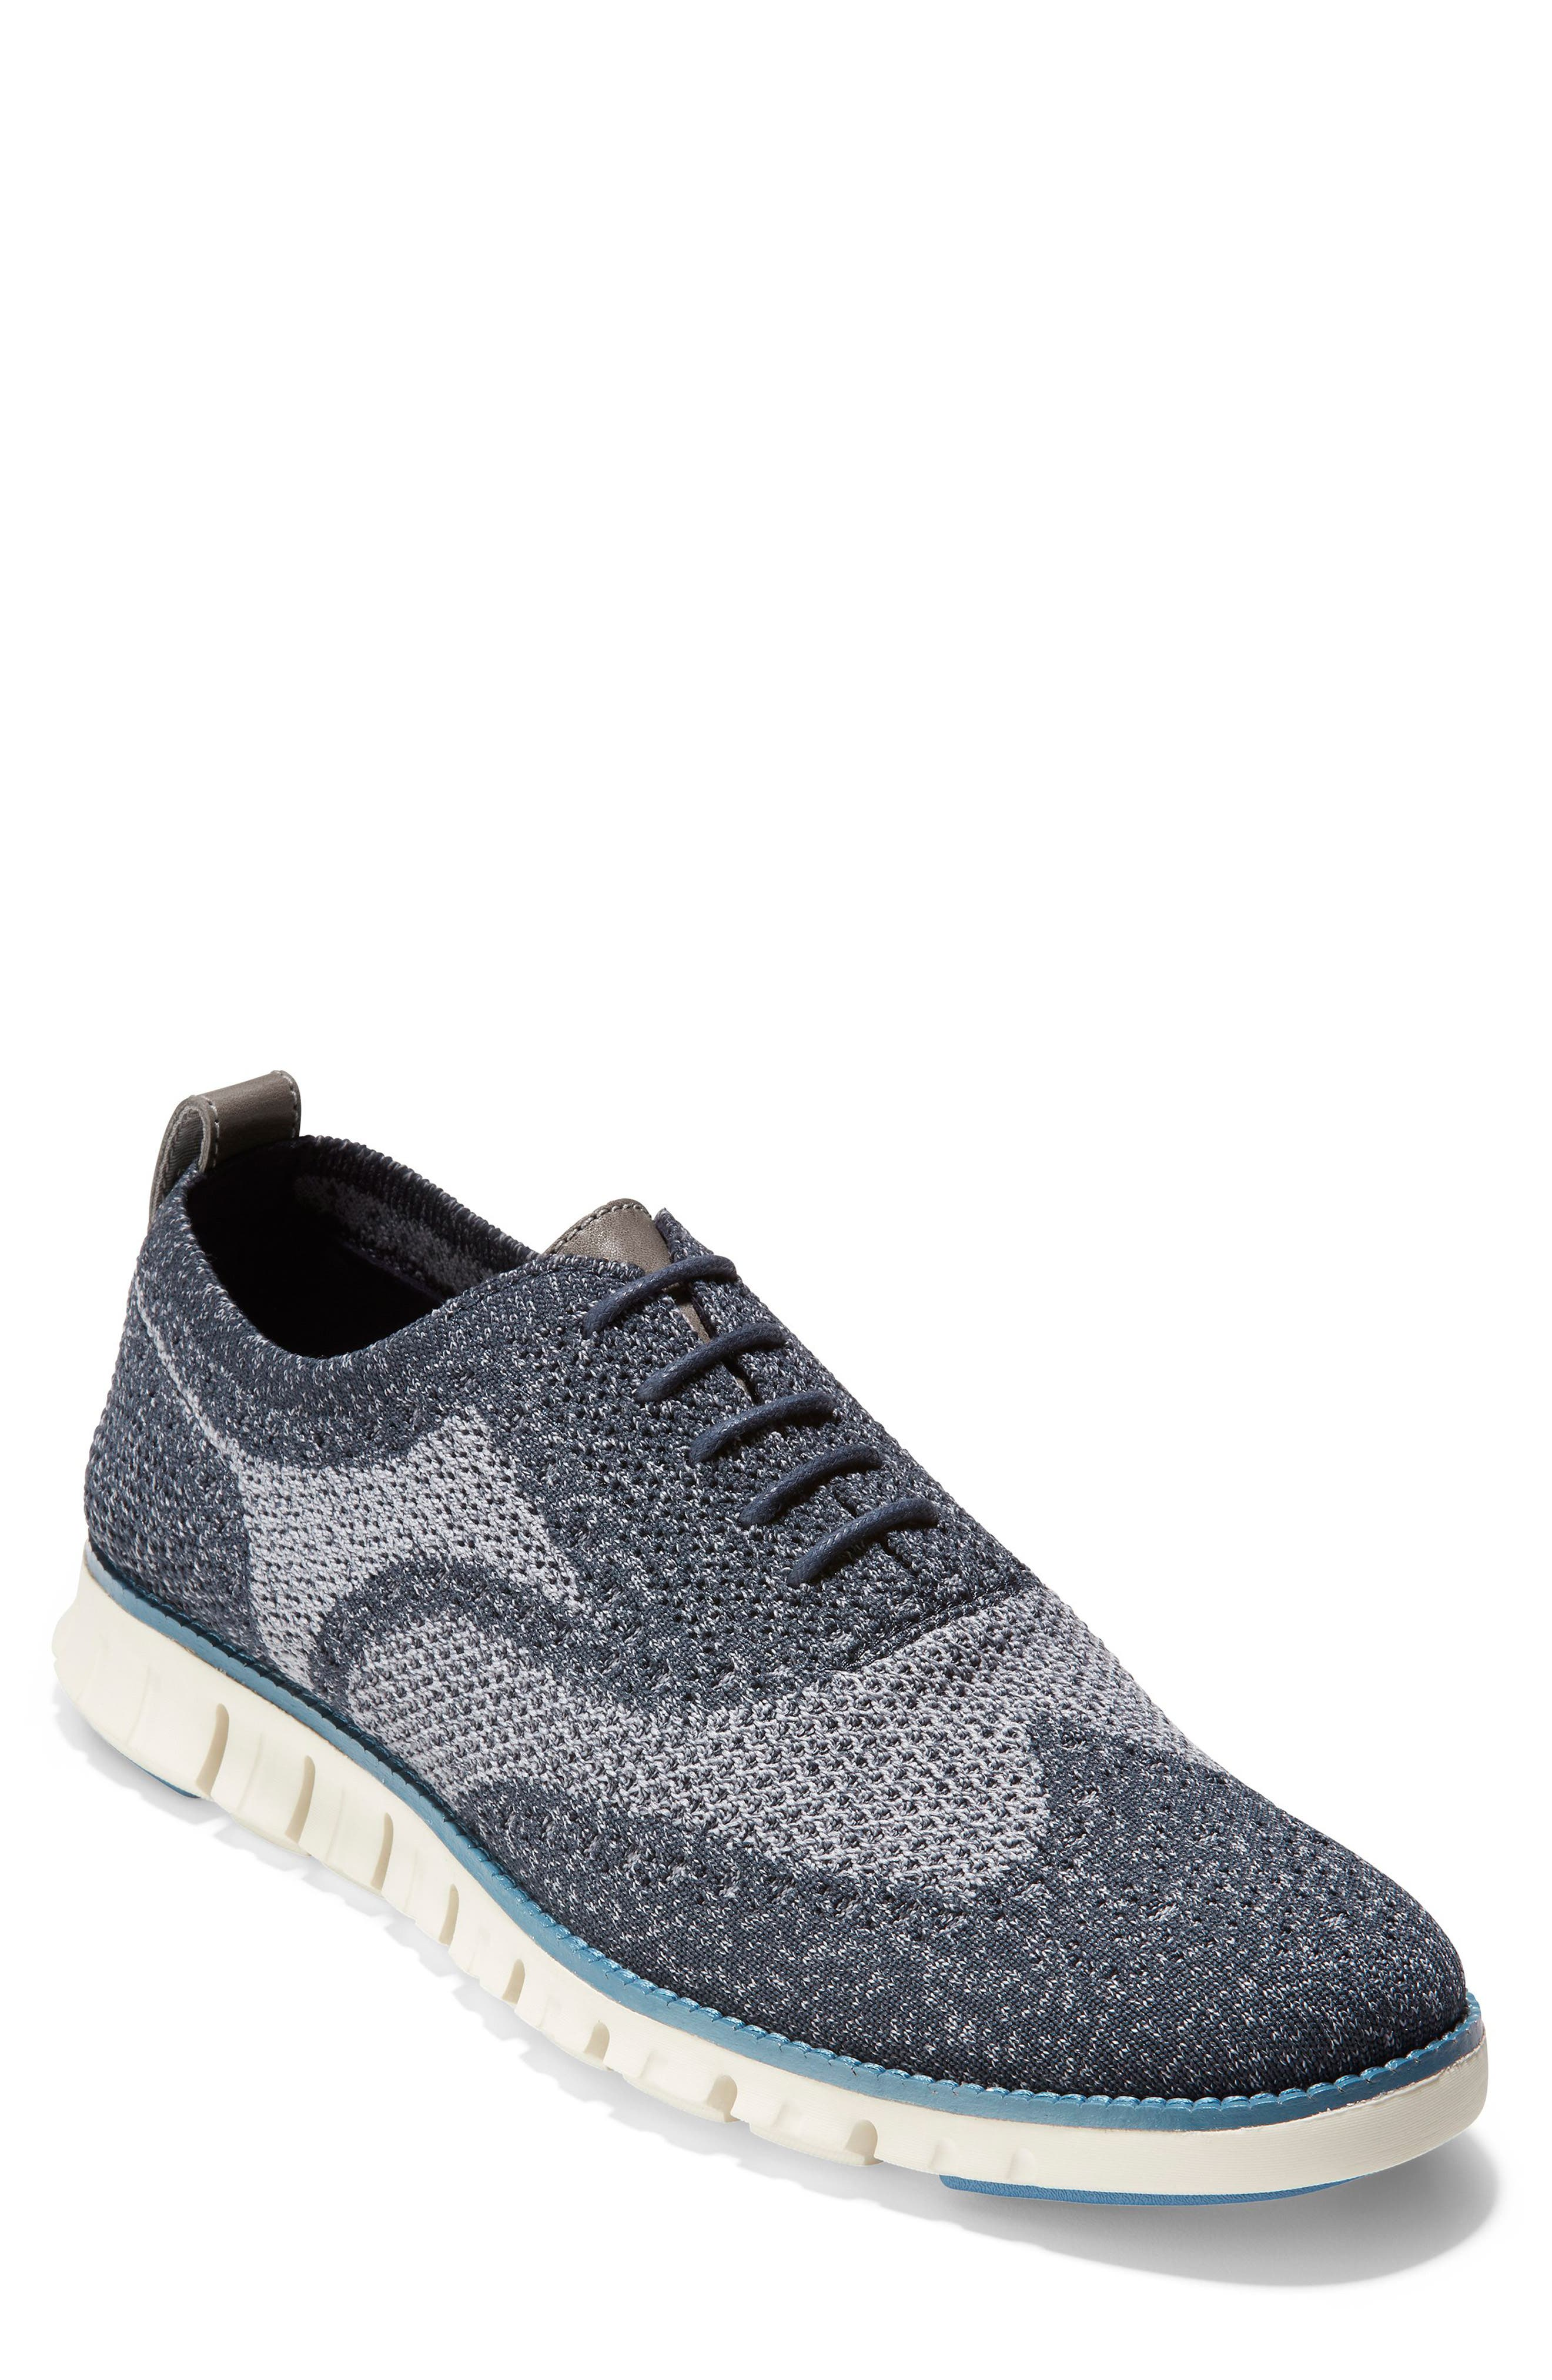 ZeroGrand Stitchlite Woven Wool Wingtip,                             Main thumbnail 1, color,                             BLUEBERRY KNIT